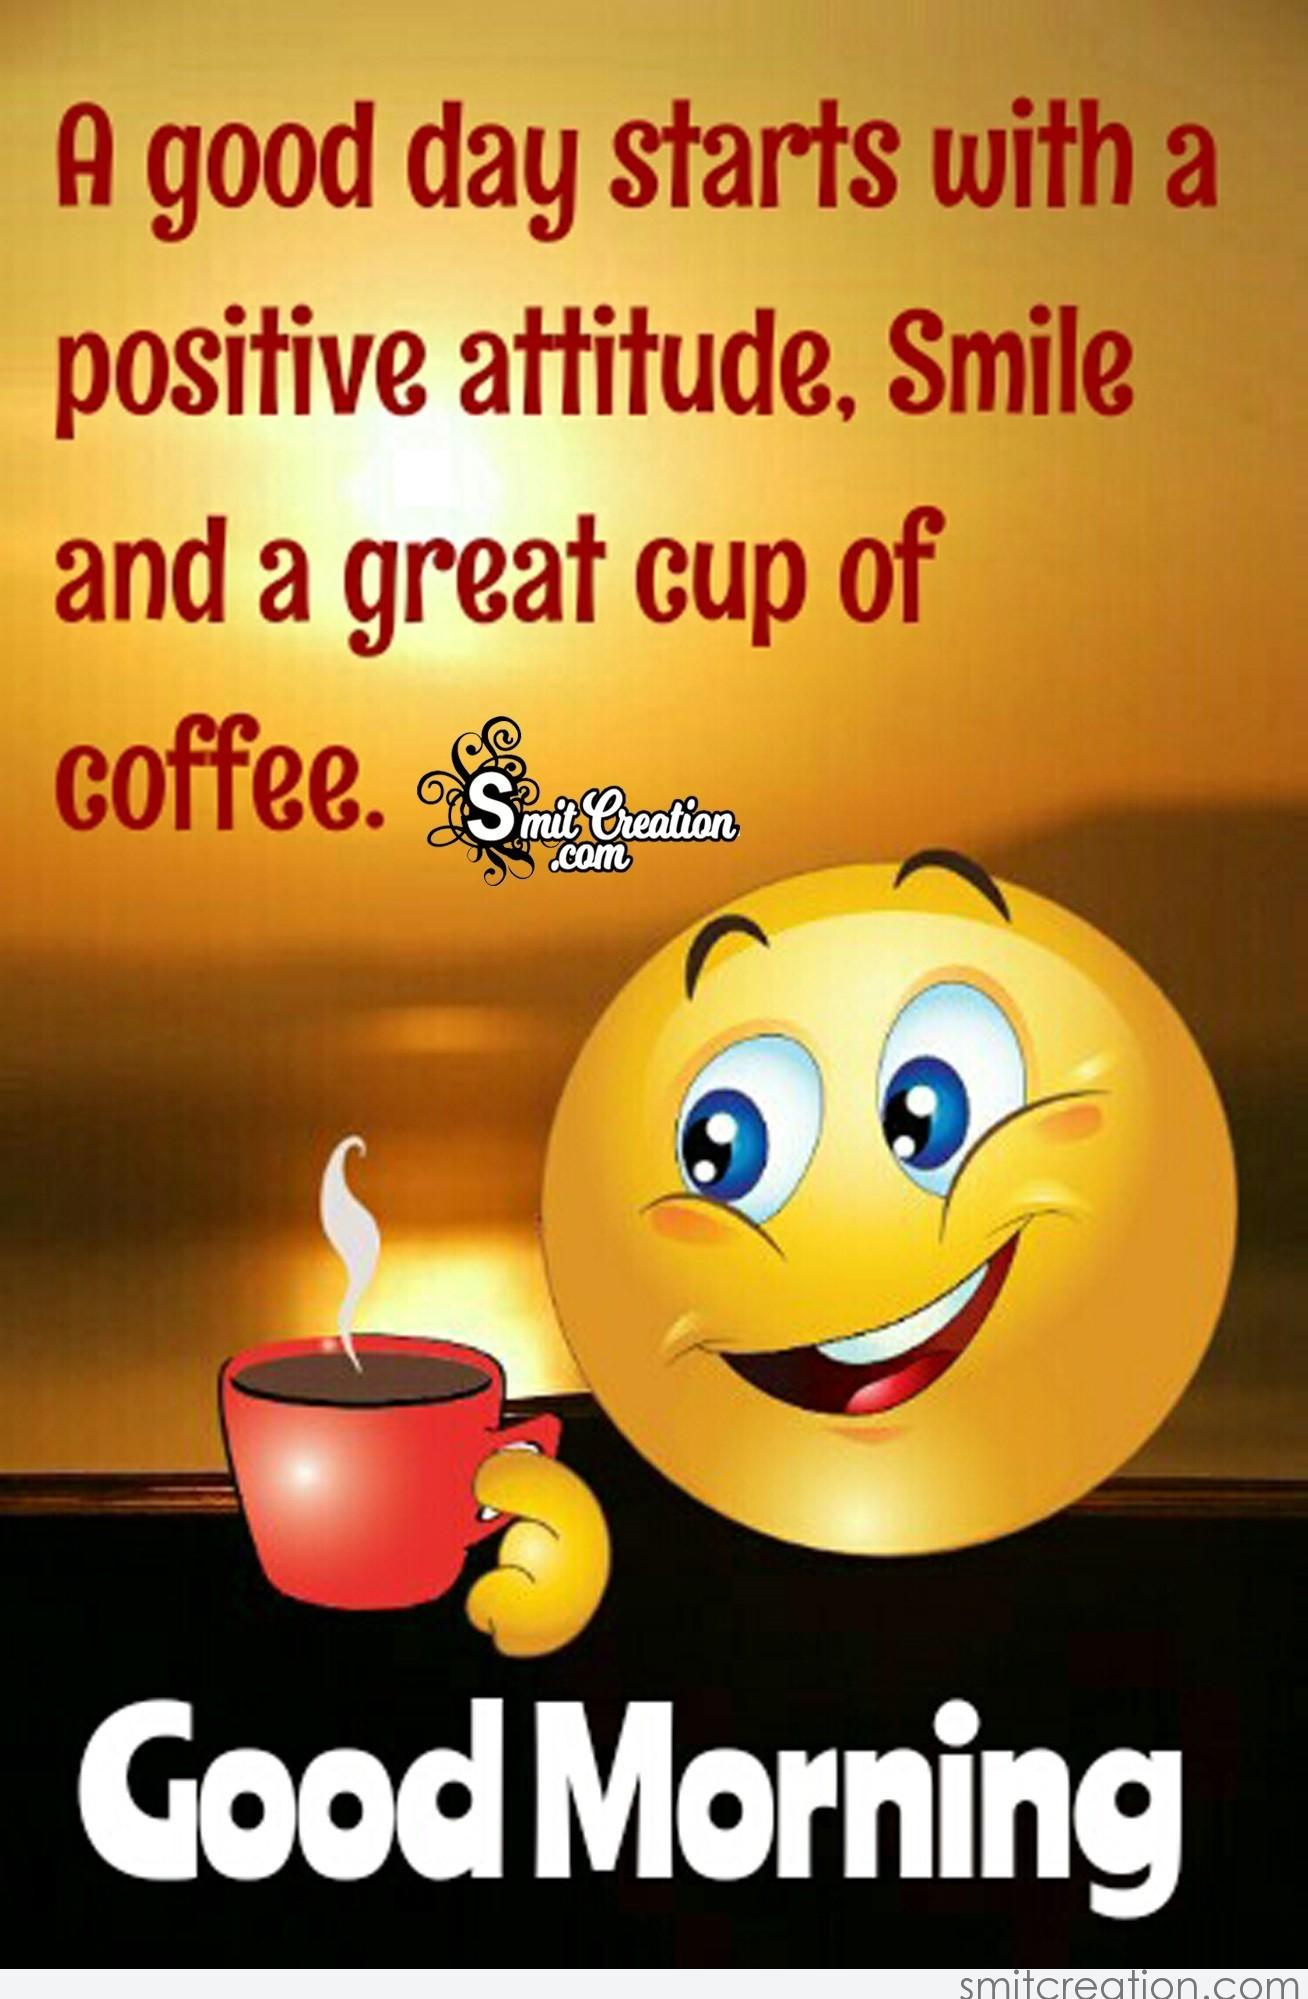 Good Morning A Great Cup Of Coffee With Smile For You